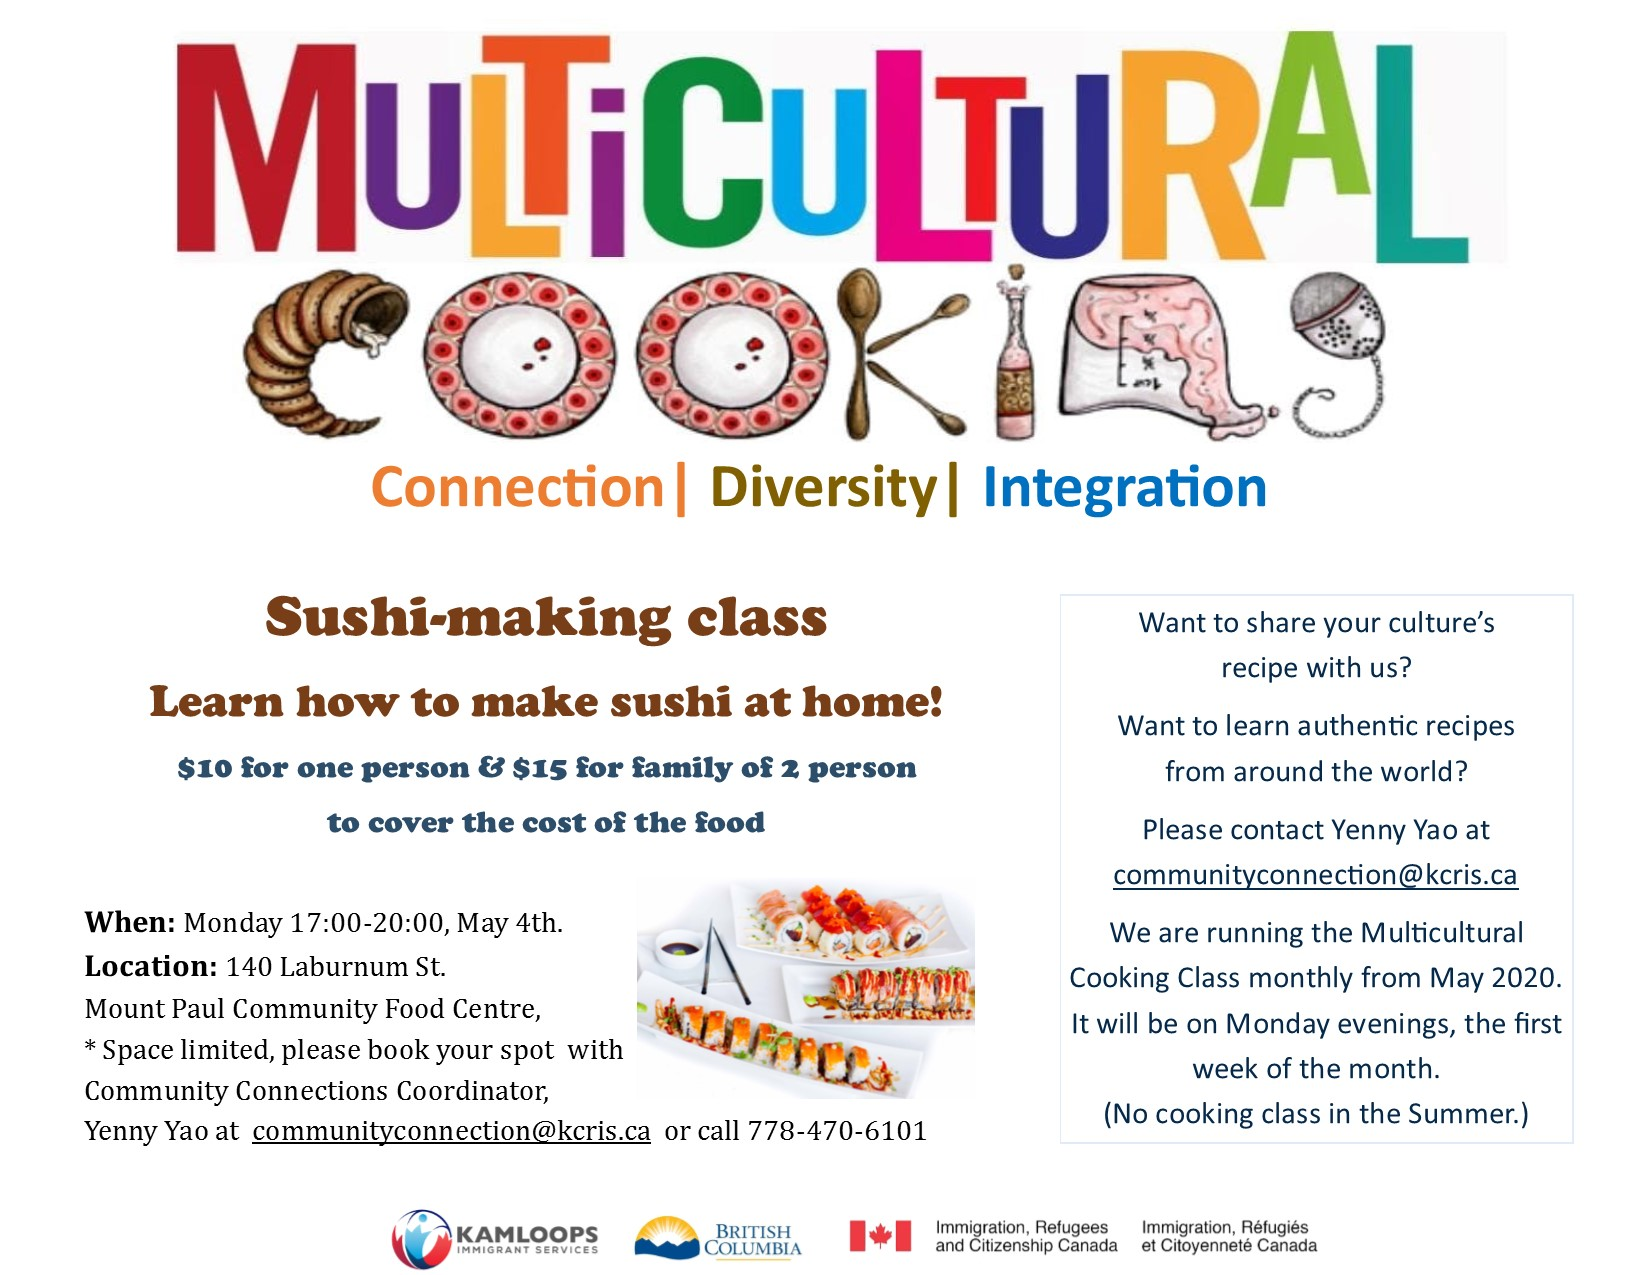 Multicultural cooking class